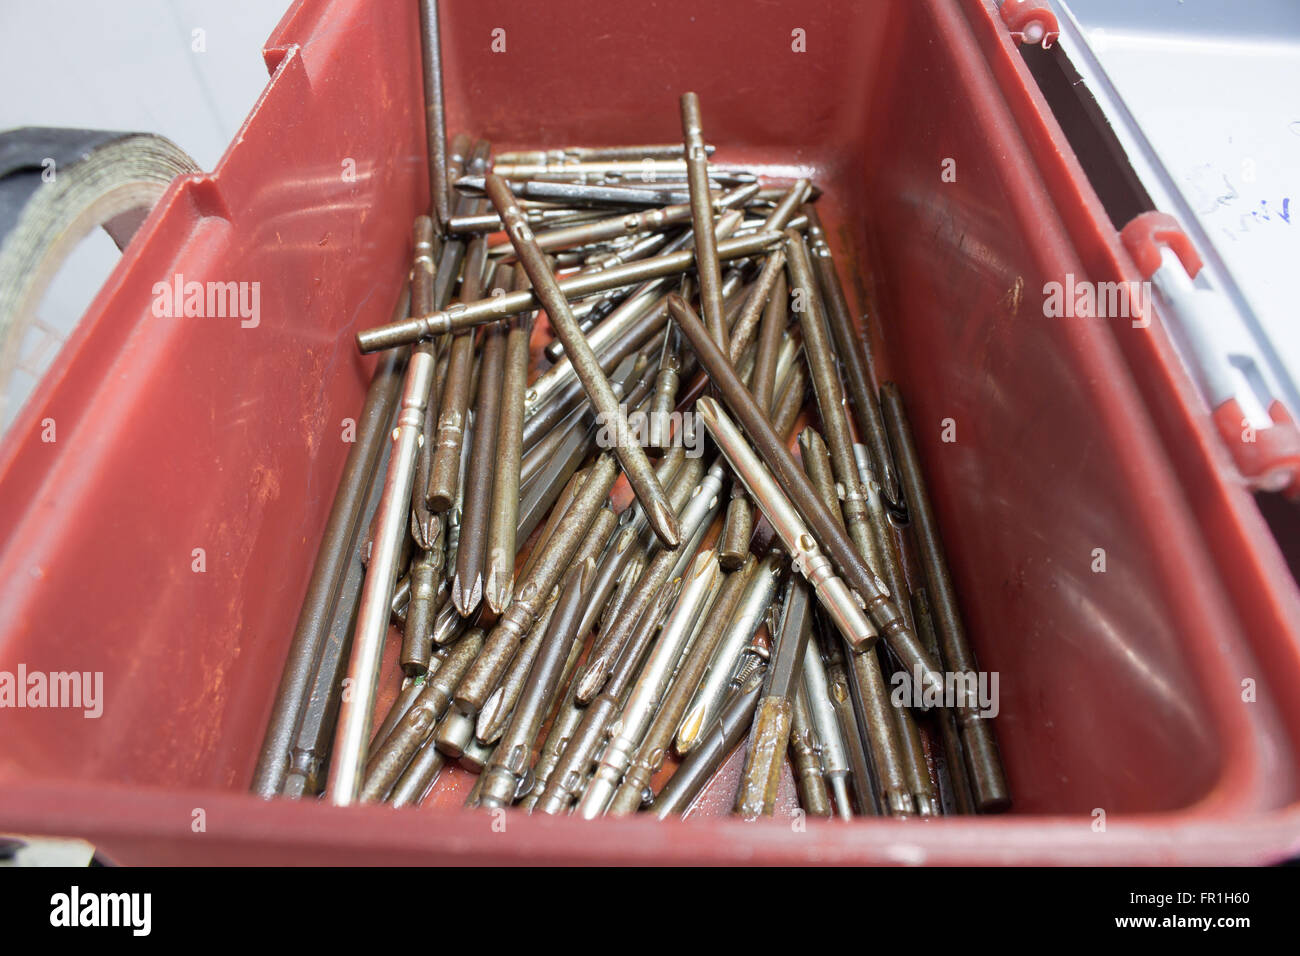 Screwdriver Head Drill Bits rust oil was soaked. - Stock Image